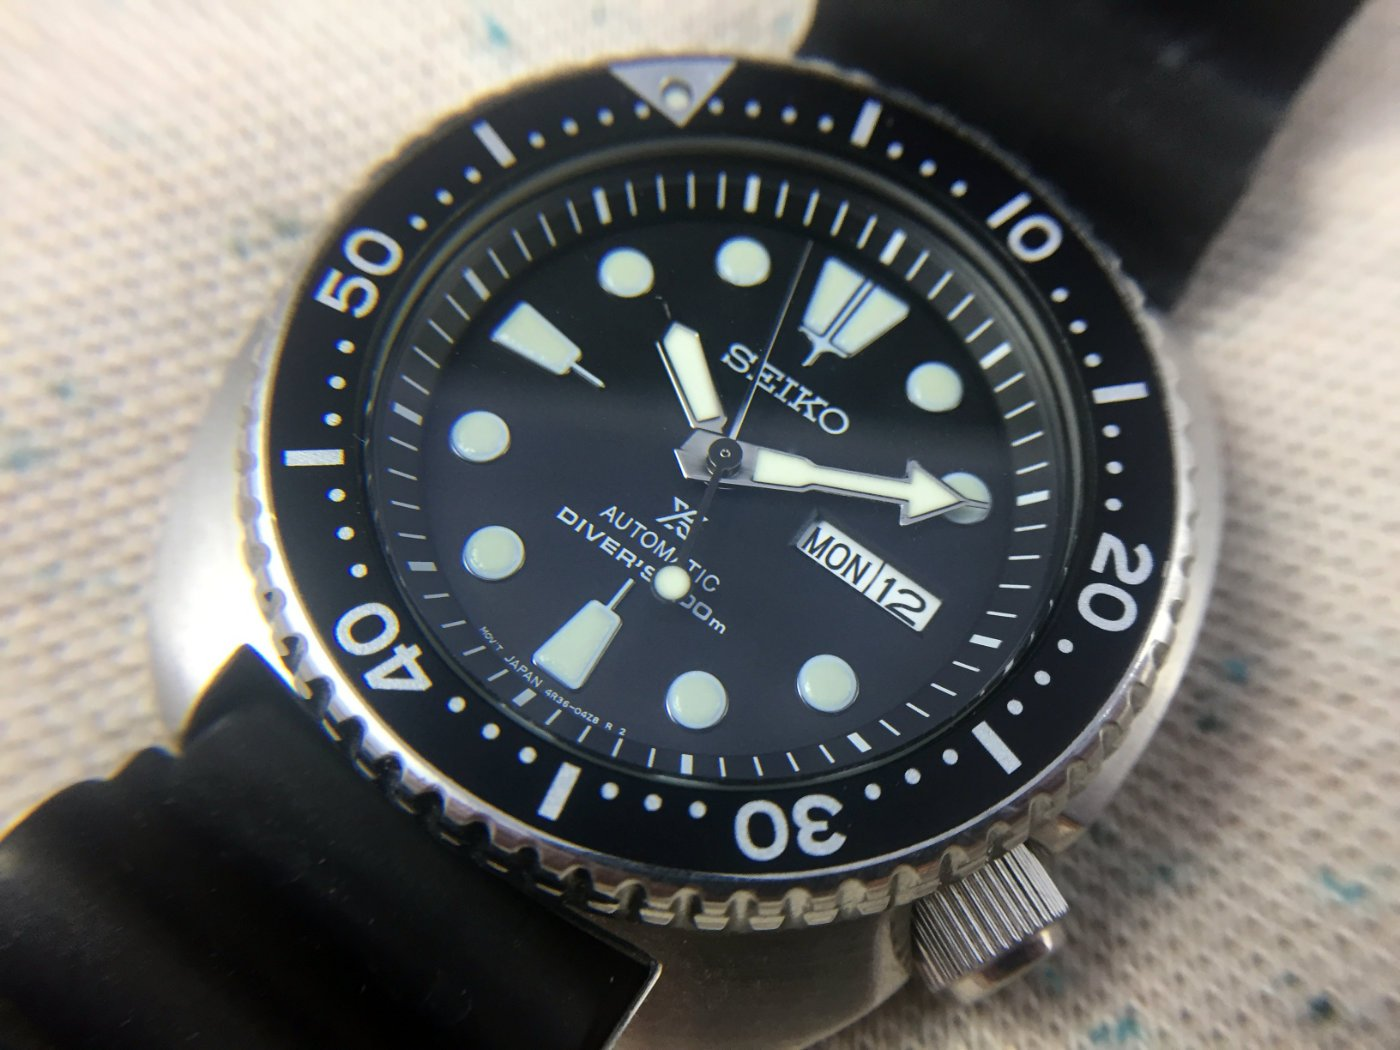 Seiko Srp Seiko Srp777 Turtle Hands On Review 60clicks